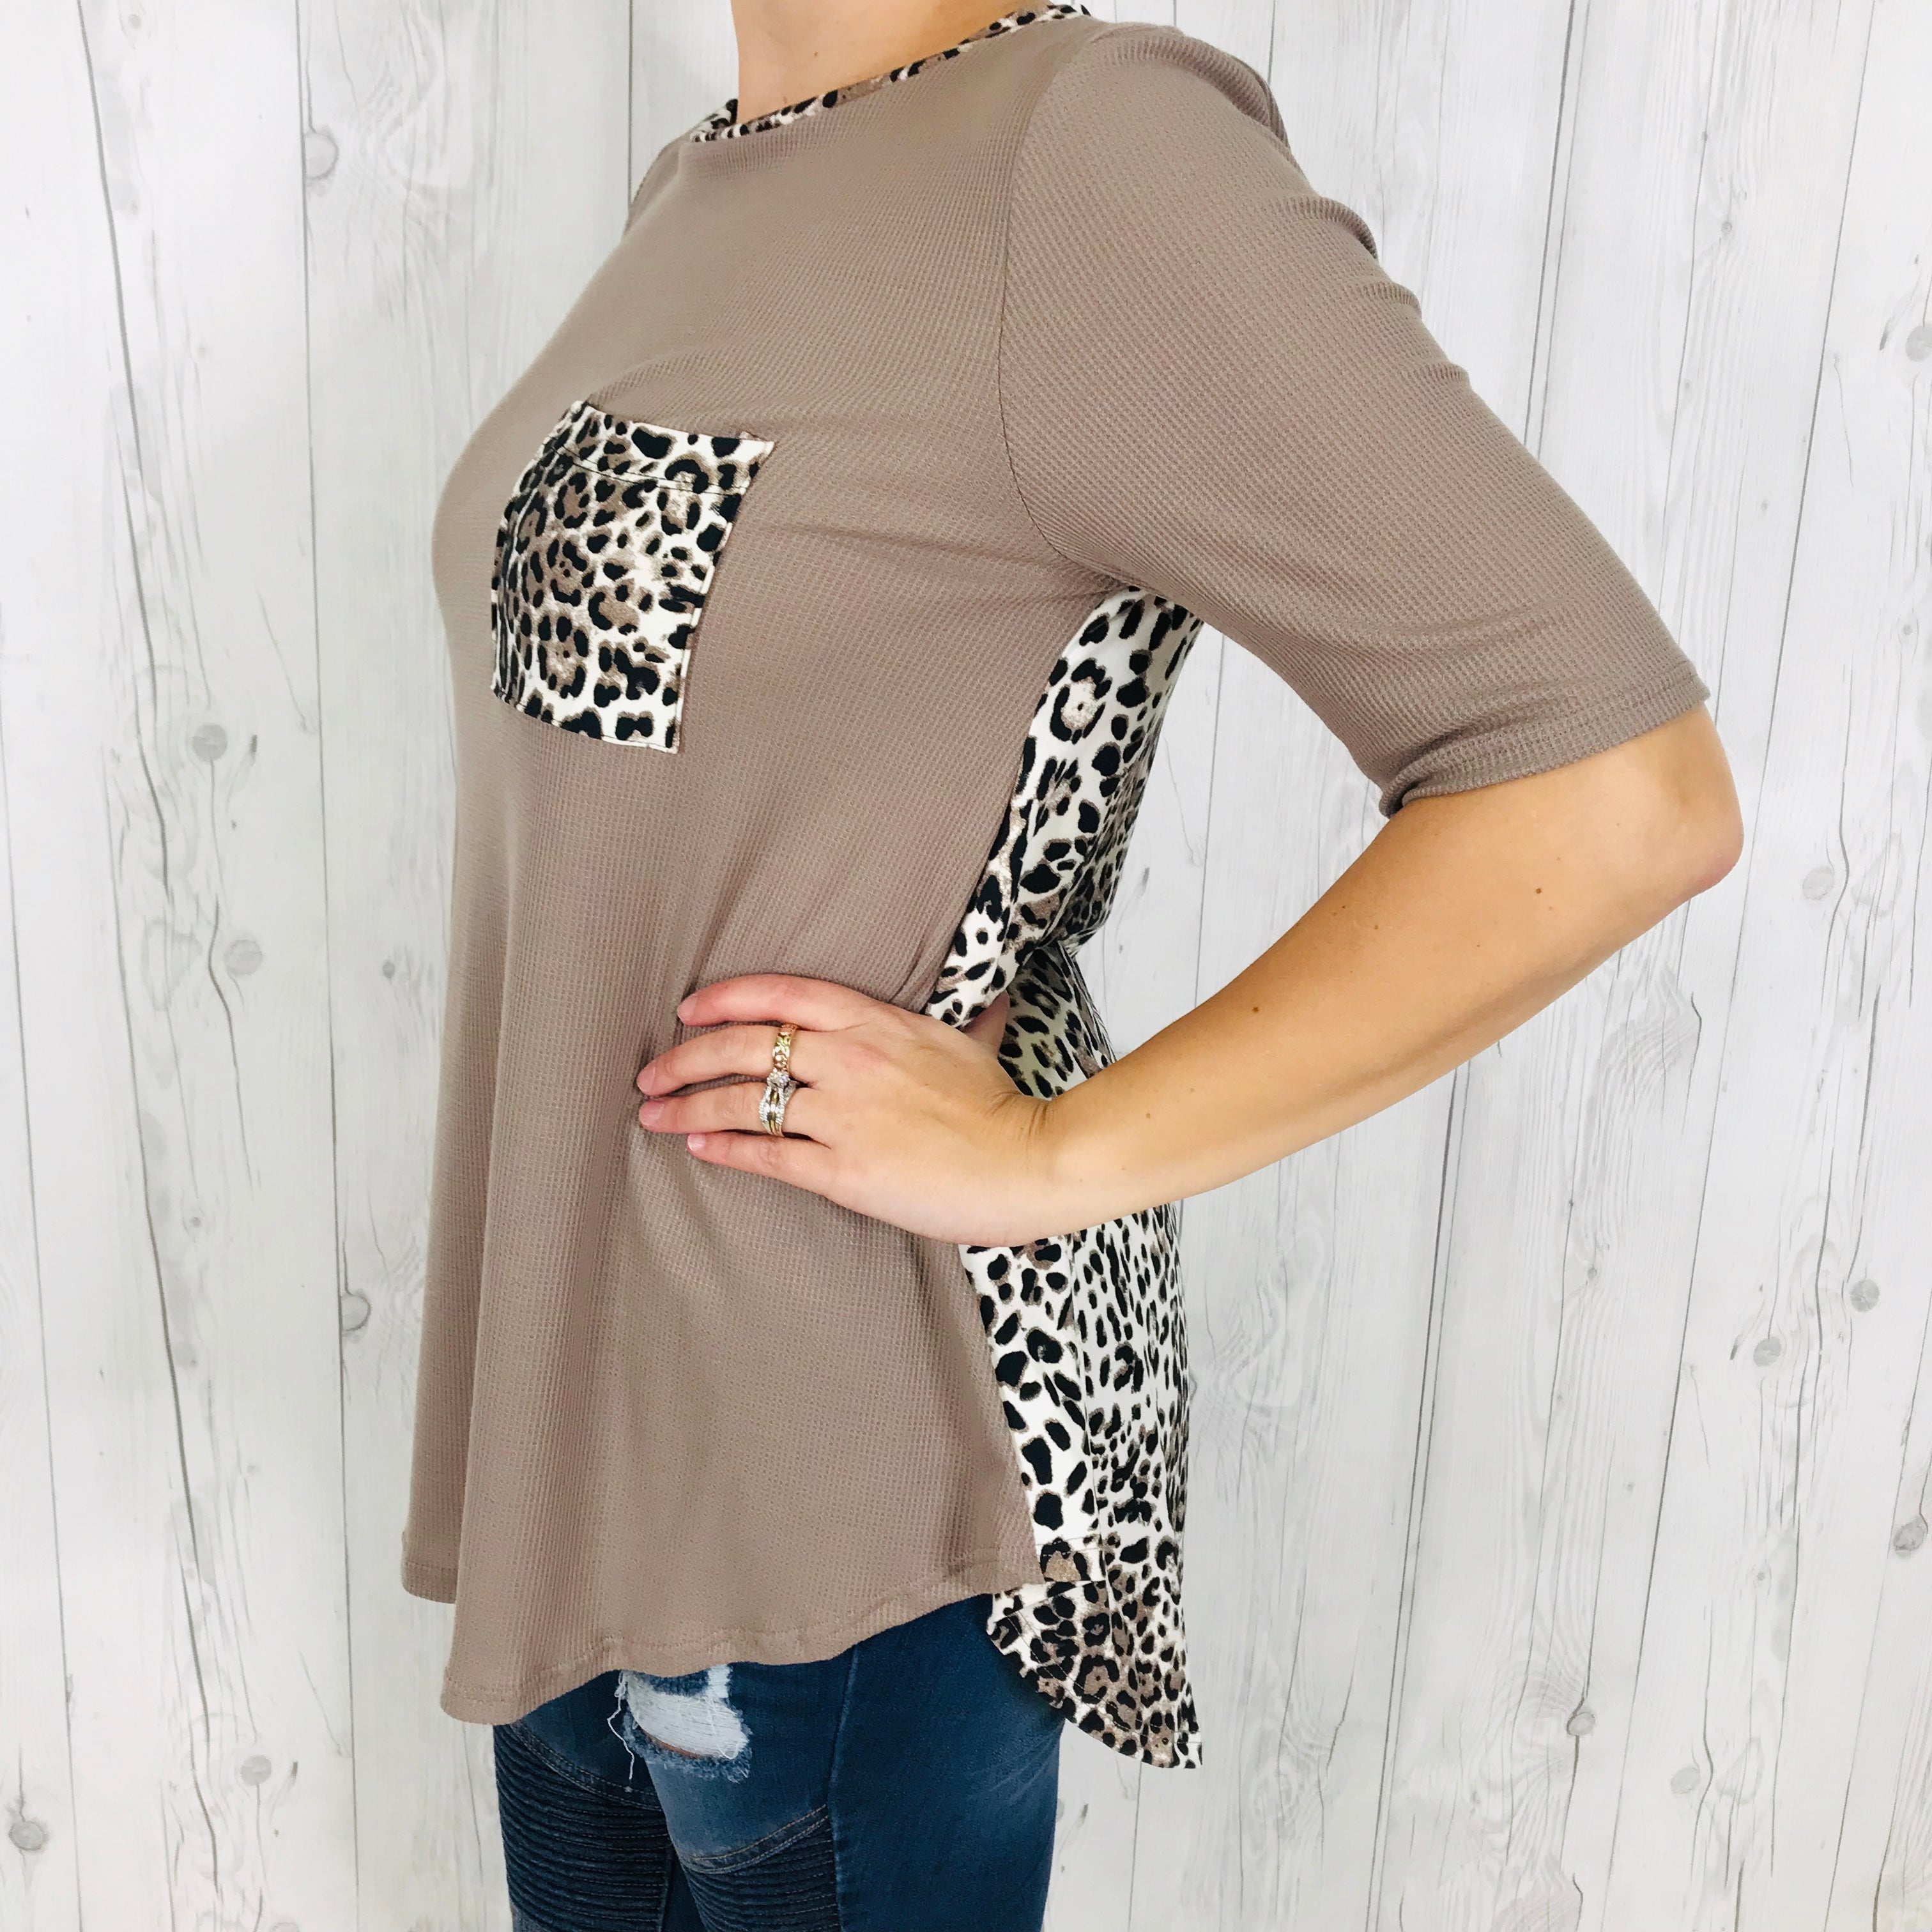 Short Sleeve Coco Knit Top with Cheetah Print Front Pocket